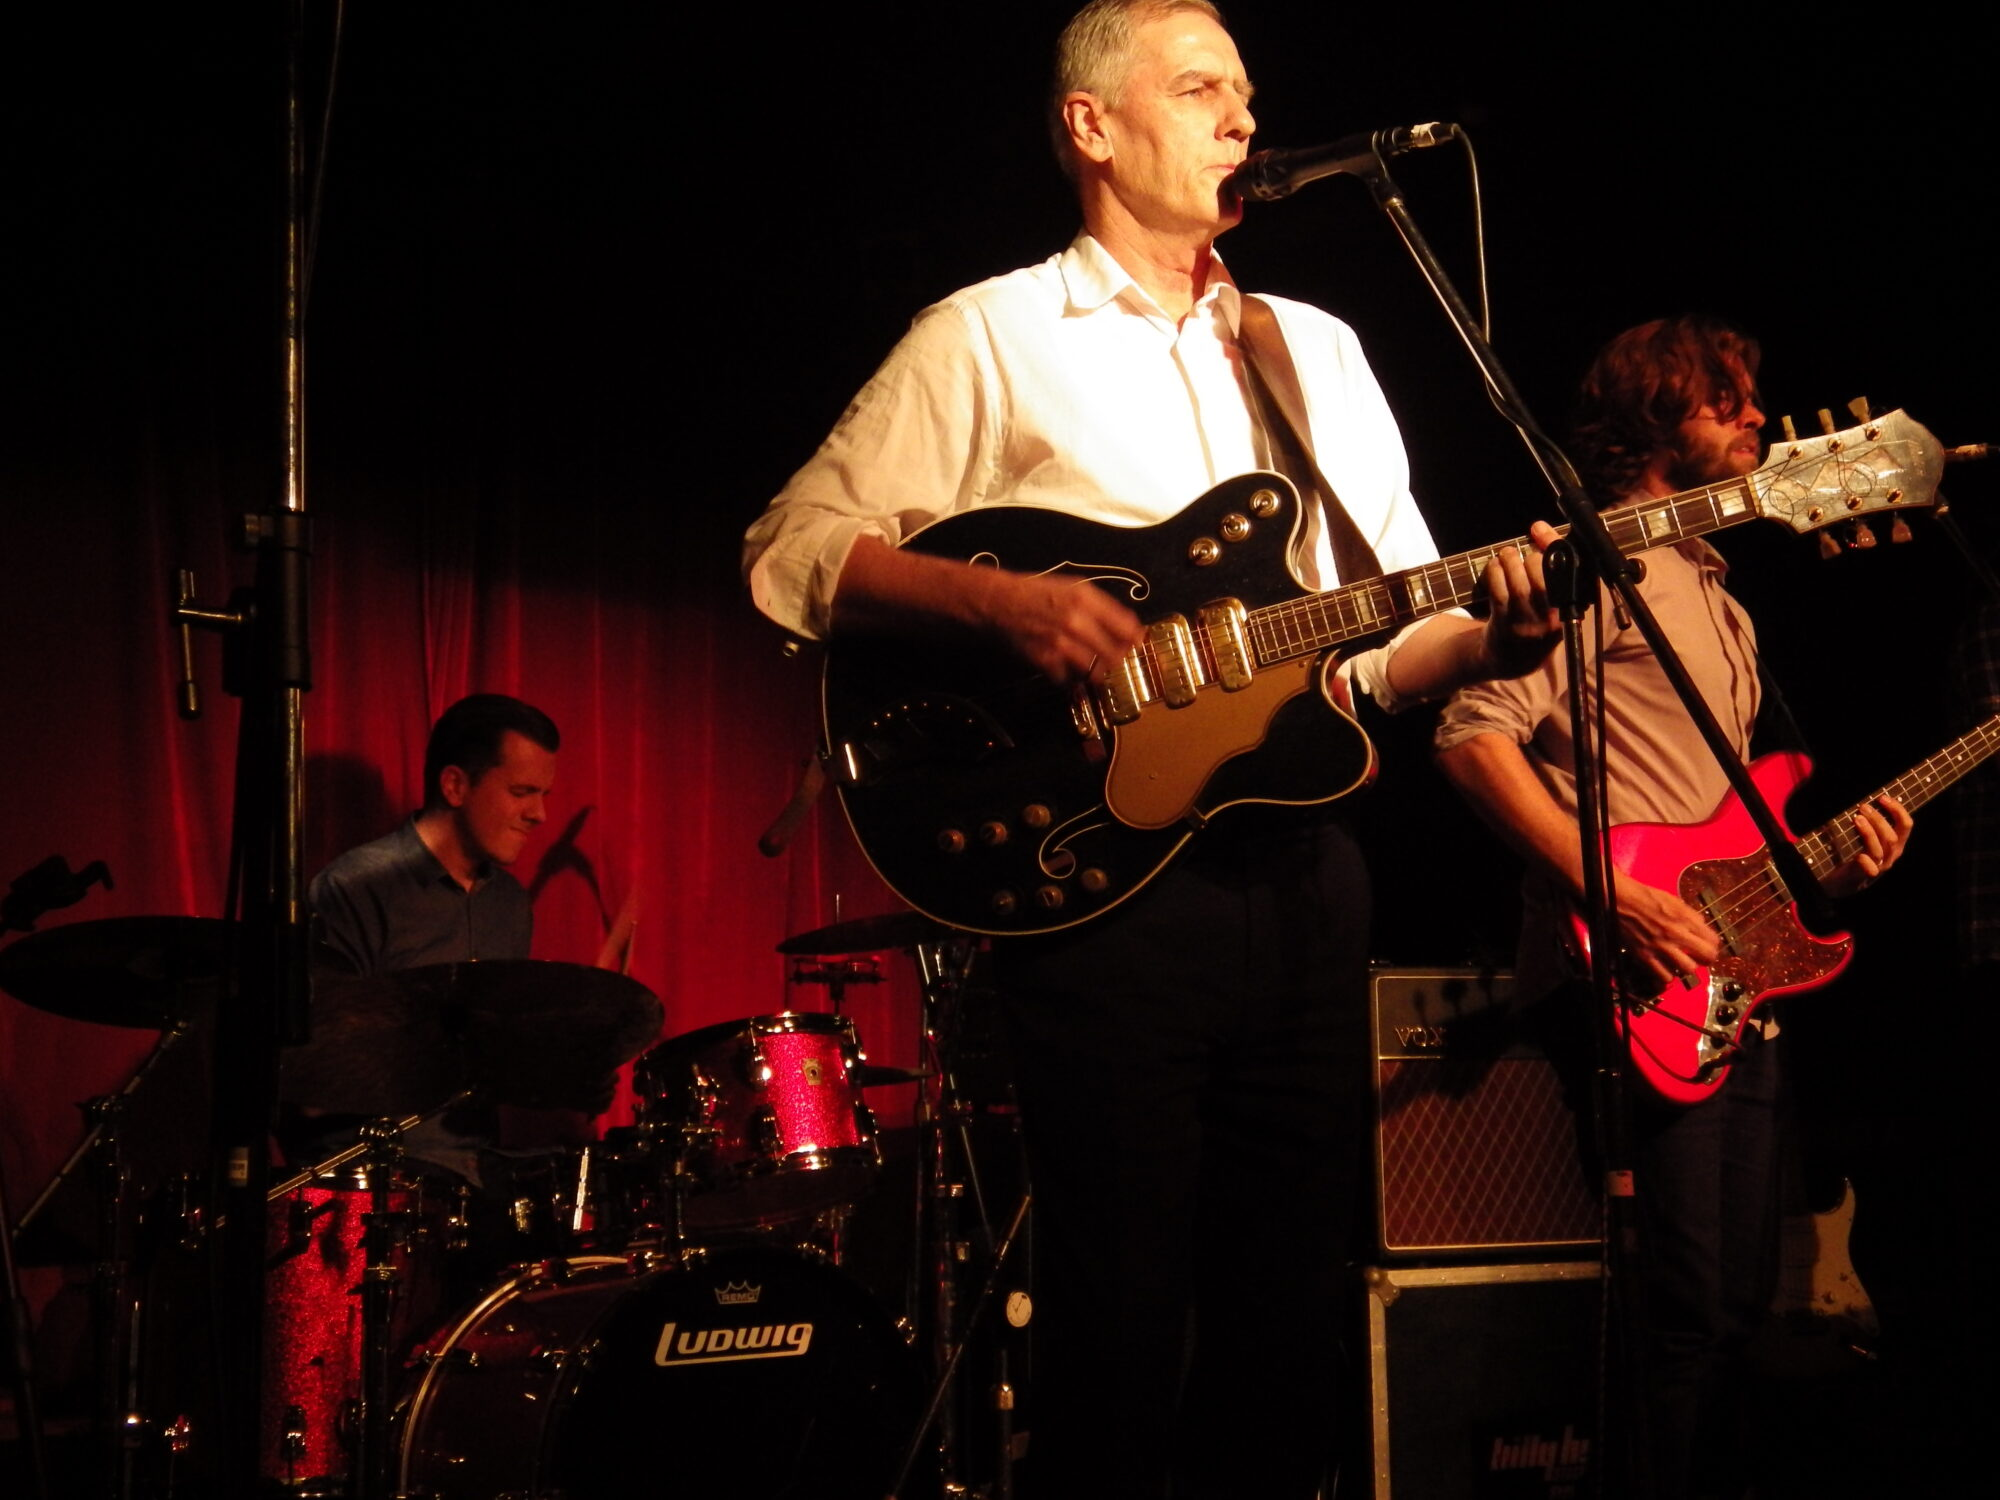 Robert Forster on stage